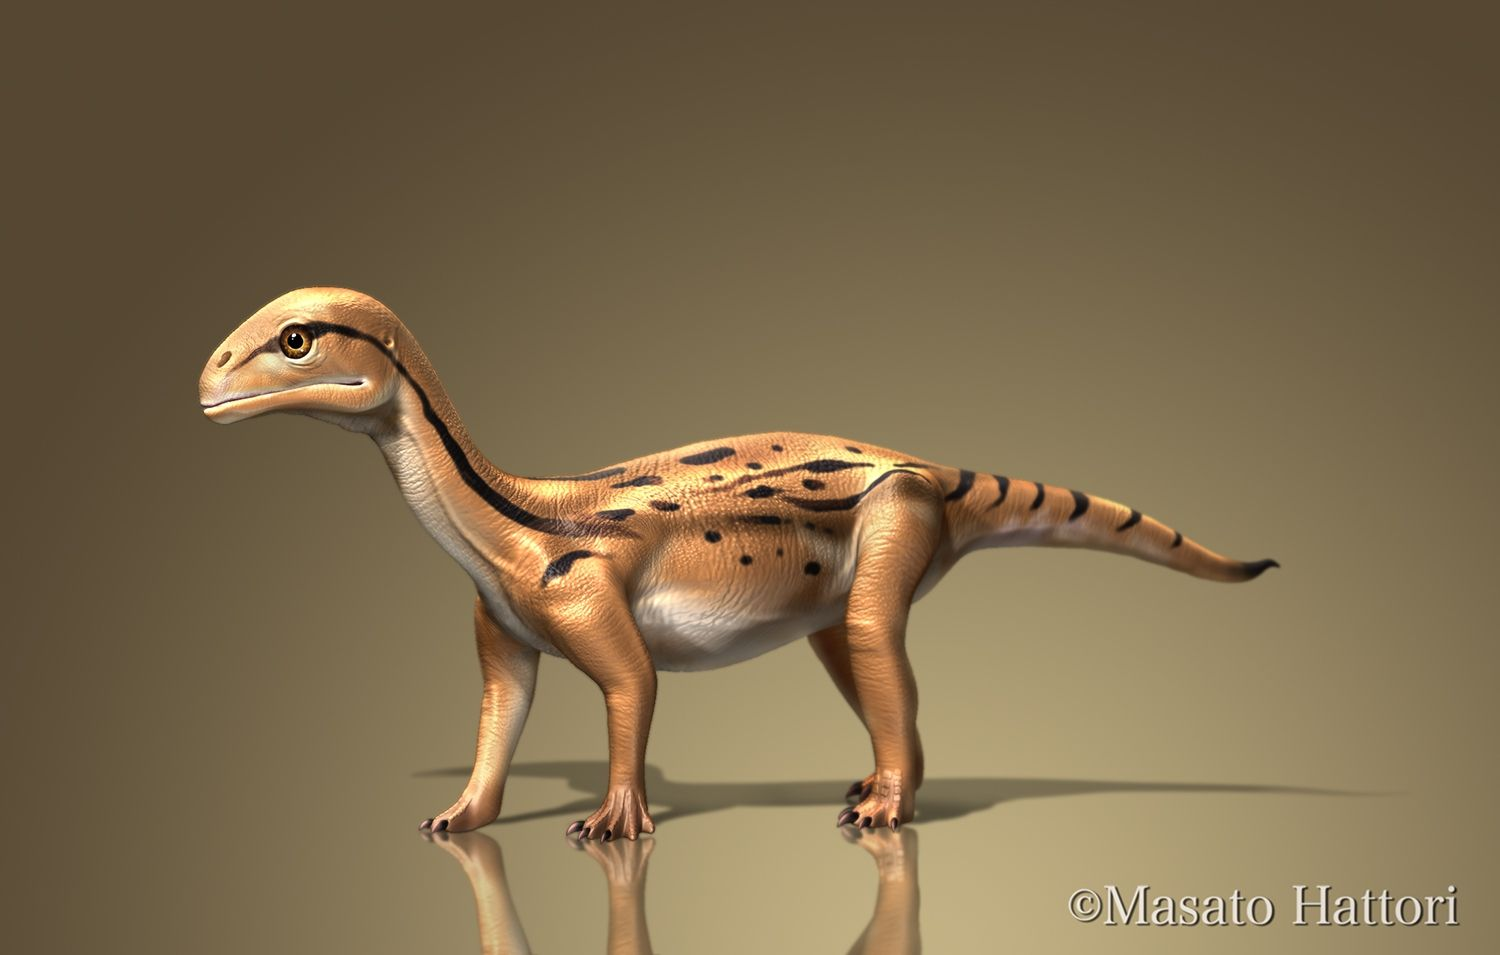 herbivorous dinosaur juvenile mususaurusu mussaurus late triassic argentina about 20cm it was discovered